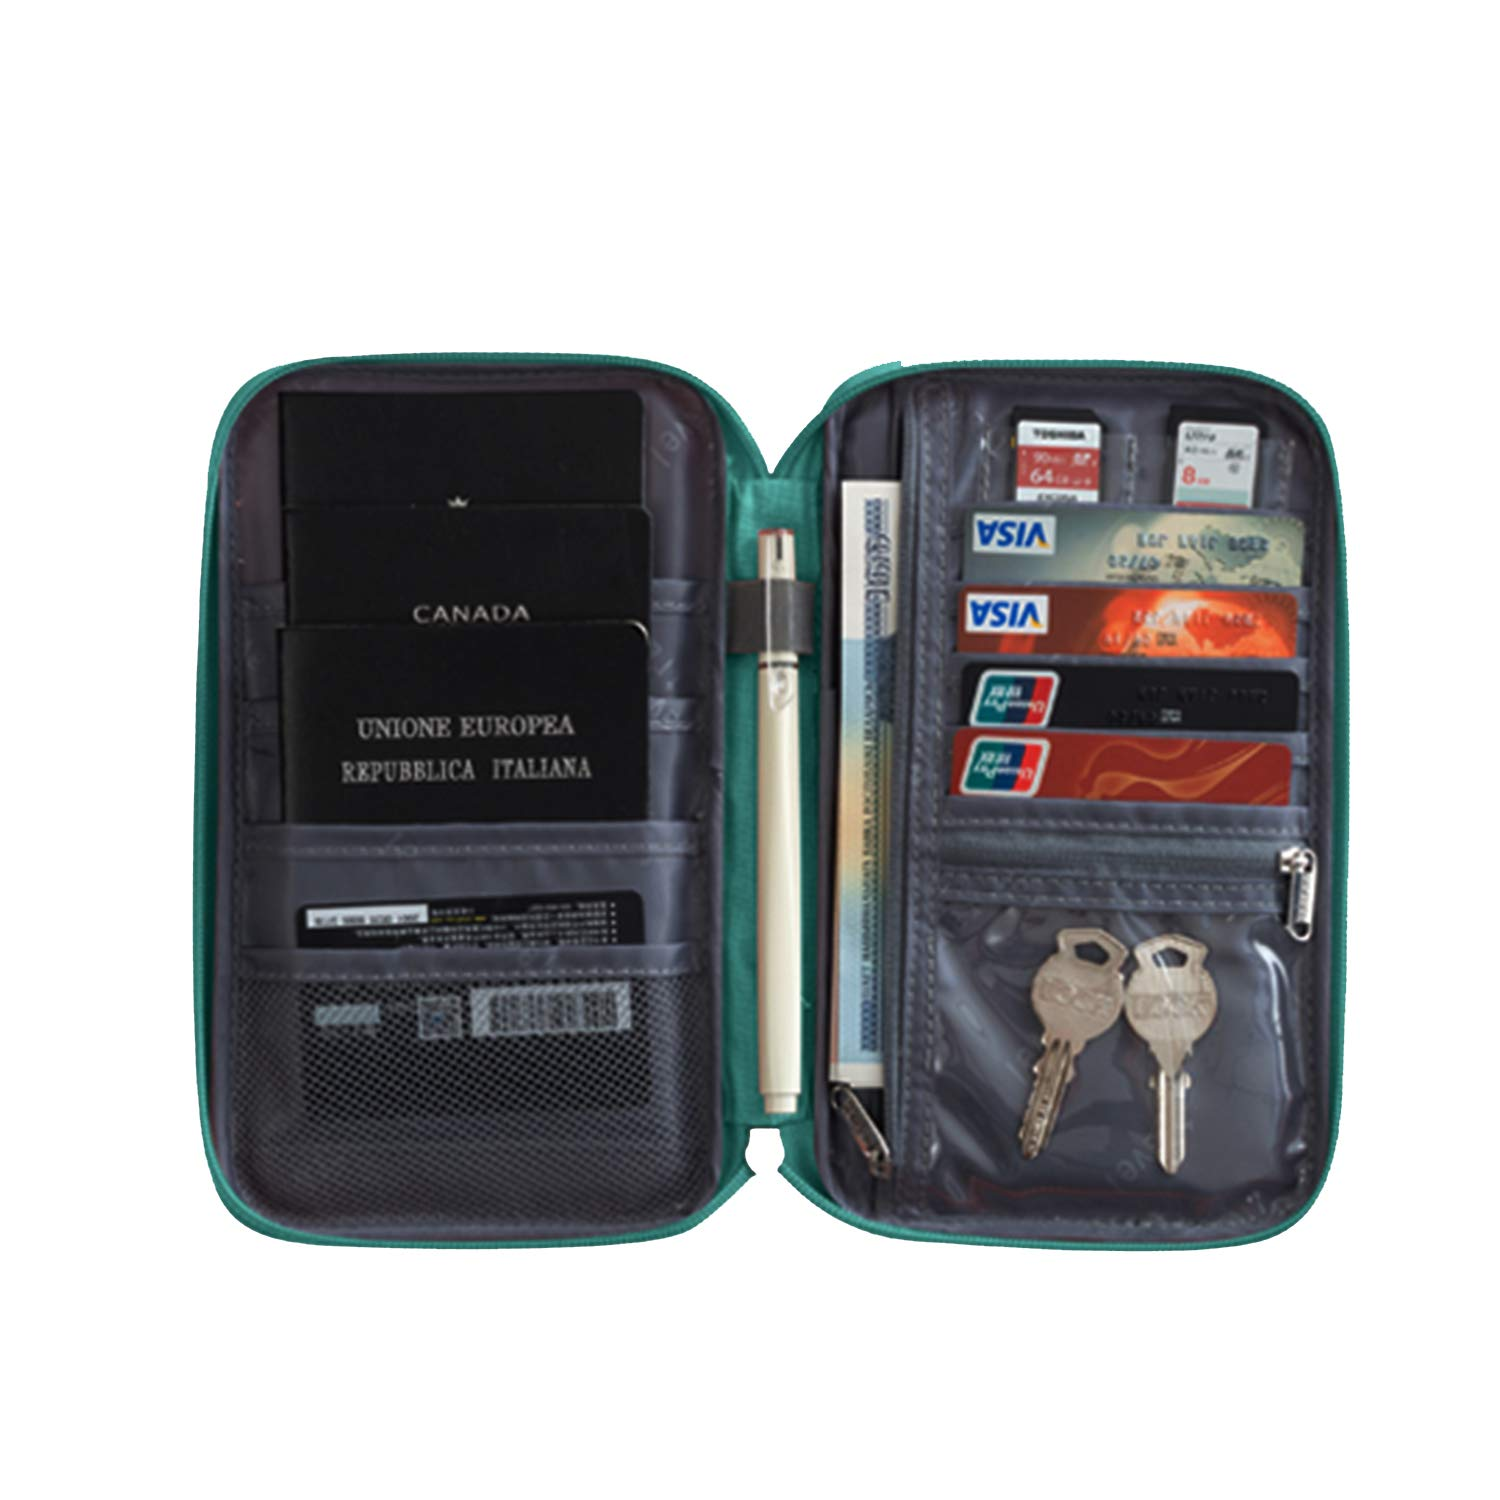 Travel Wallets,Passport Wallets Octto-Air Tickets Storage Package Gray